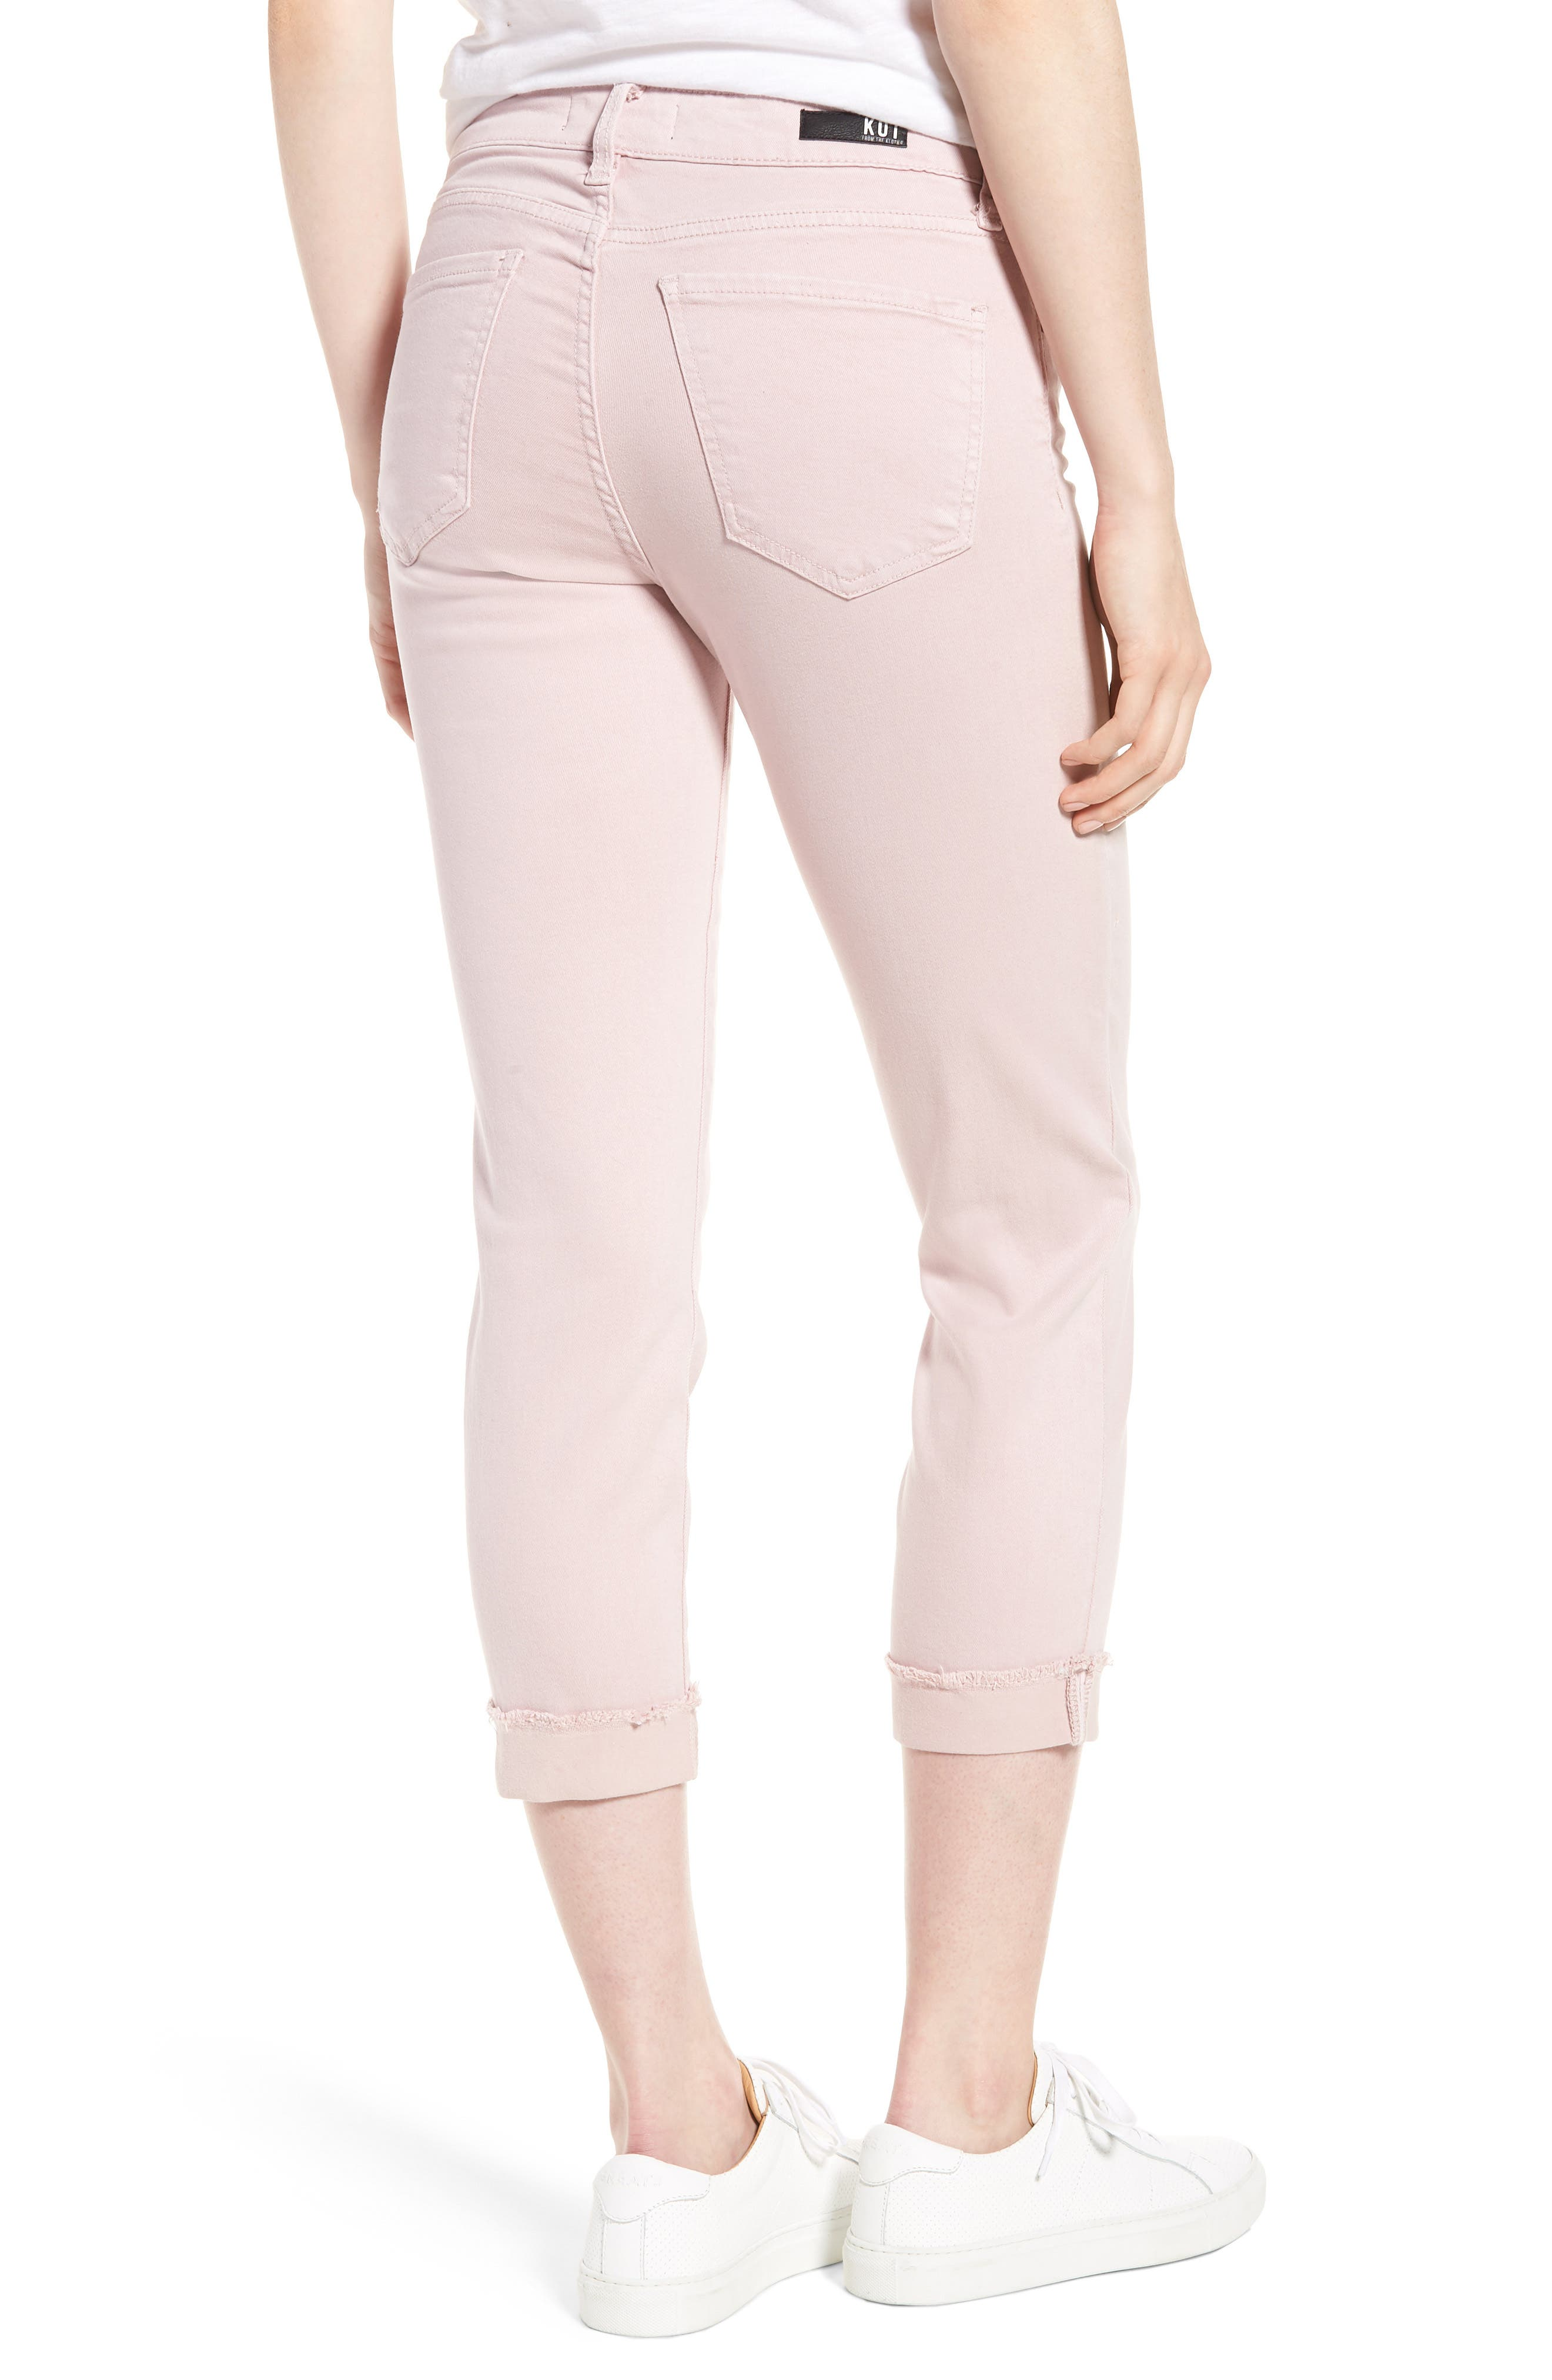 KUT from the Kloth Amy Crop Skinny Jeans,                             Alternate thumbnail 2, color,                             Rose